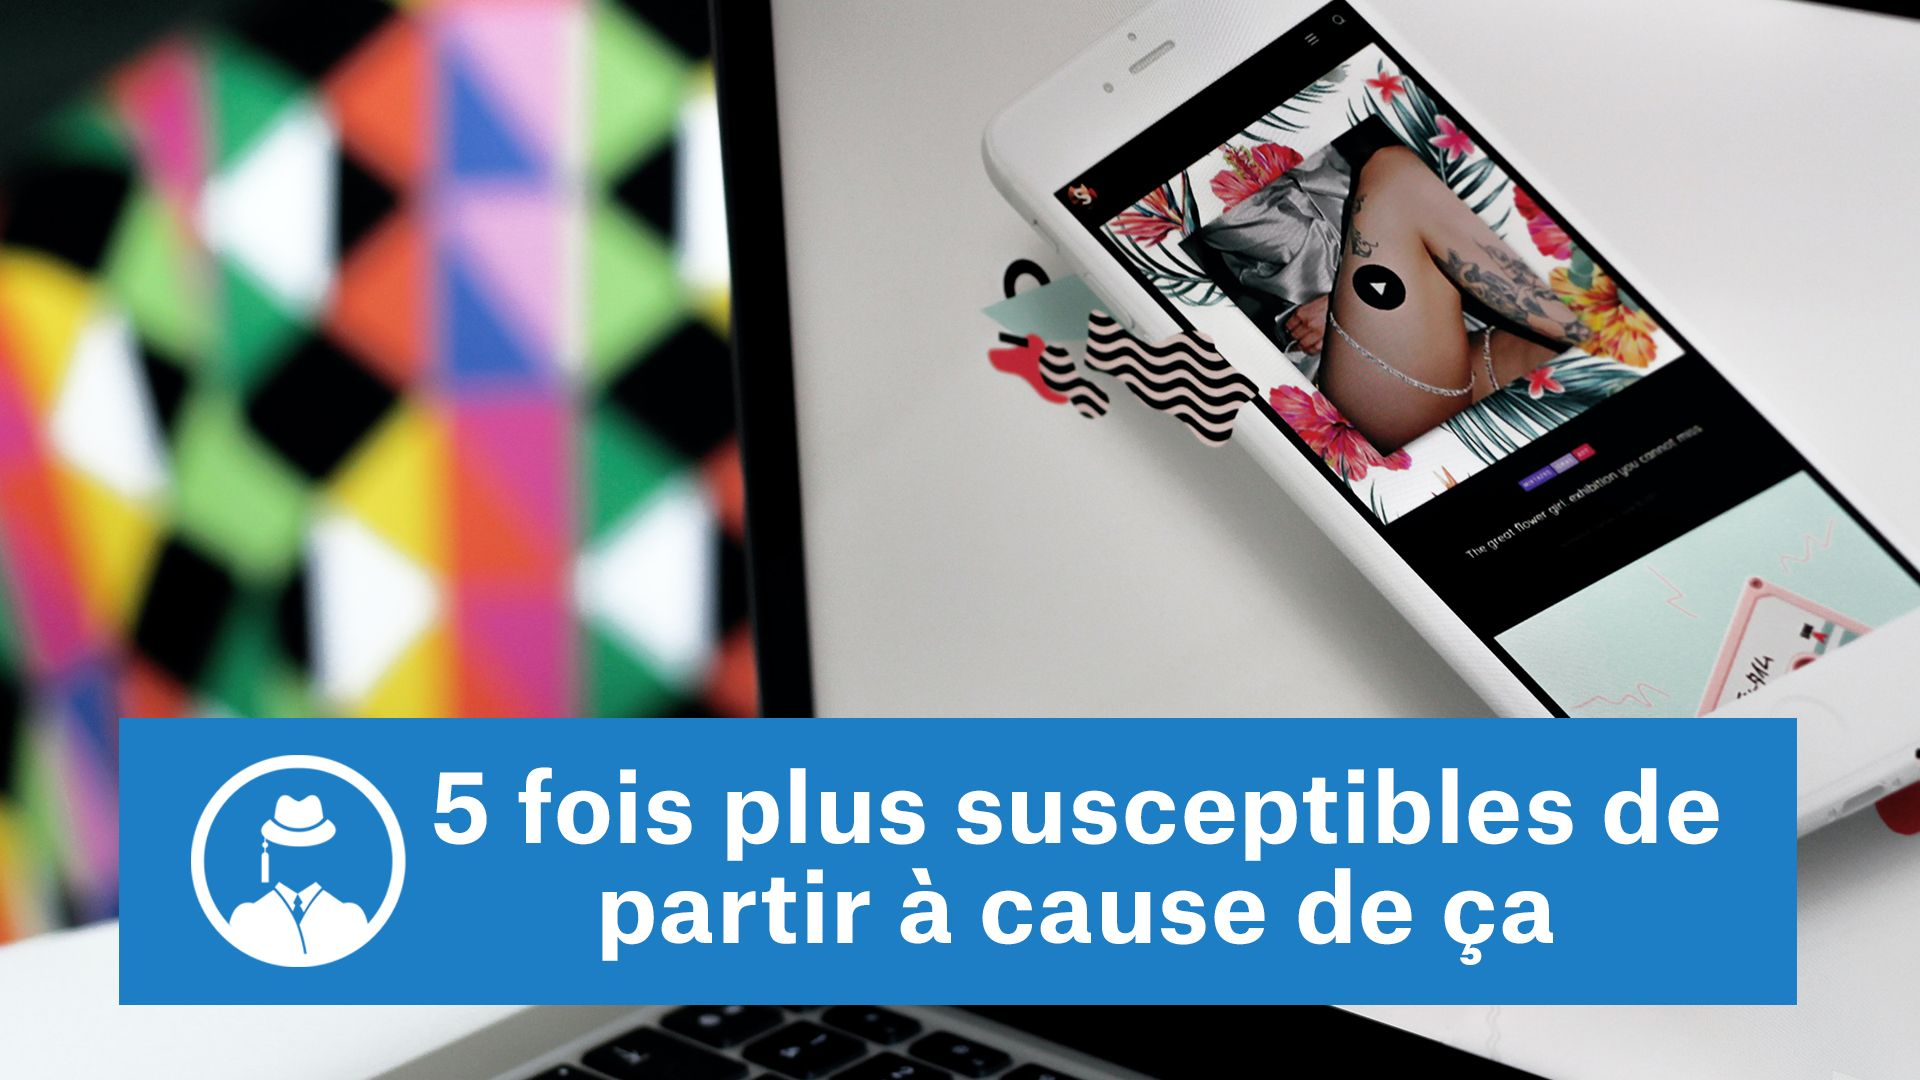 5 fois plus susceptibles de partir à cause de ça #GrowthHacking #WebMarketing #FormationGrowthHacking #CentreDeFormationFrance #TunnelAARRR #AARRR #SocialMedia #CommunityManagement #SEO #MarketingDigital #SiteWeb #GoogleSEO #SEO #responsive